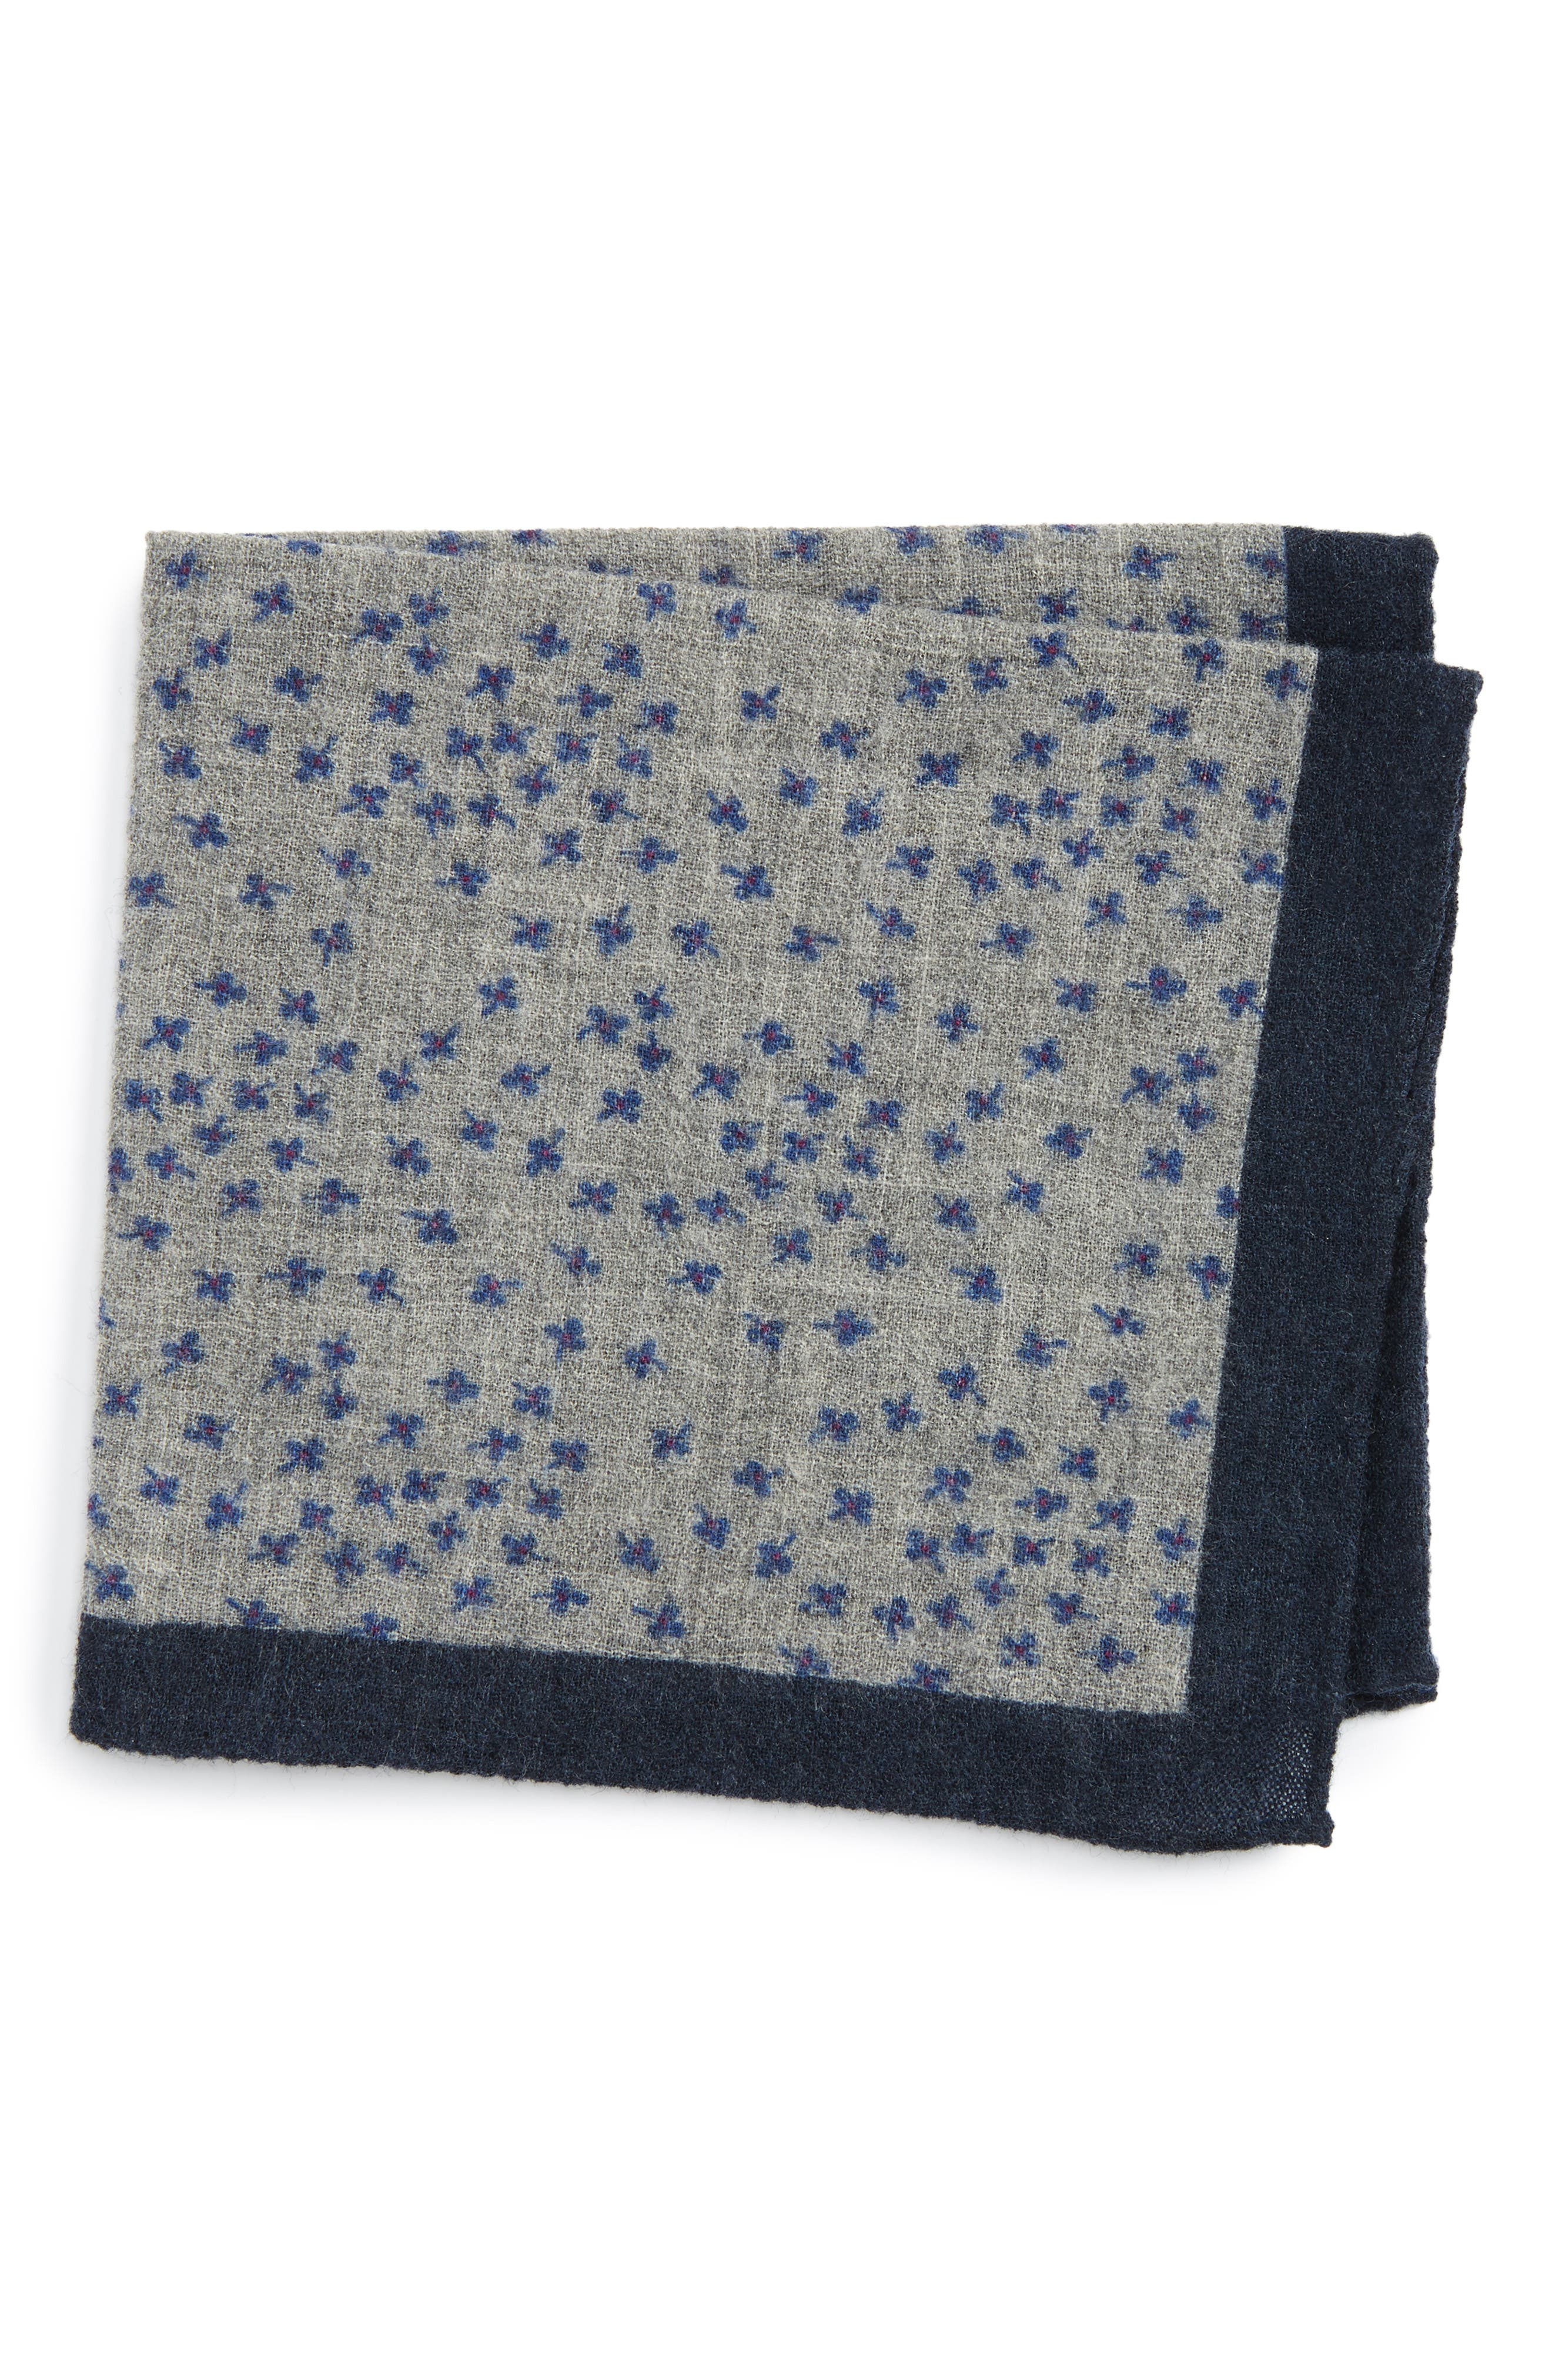 Main Image - Ted Baker London Patterned Wool Pocket Square